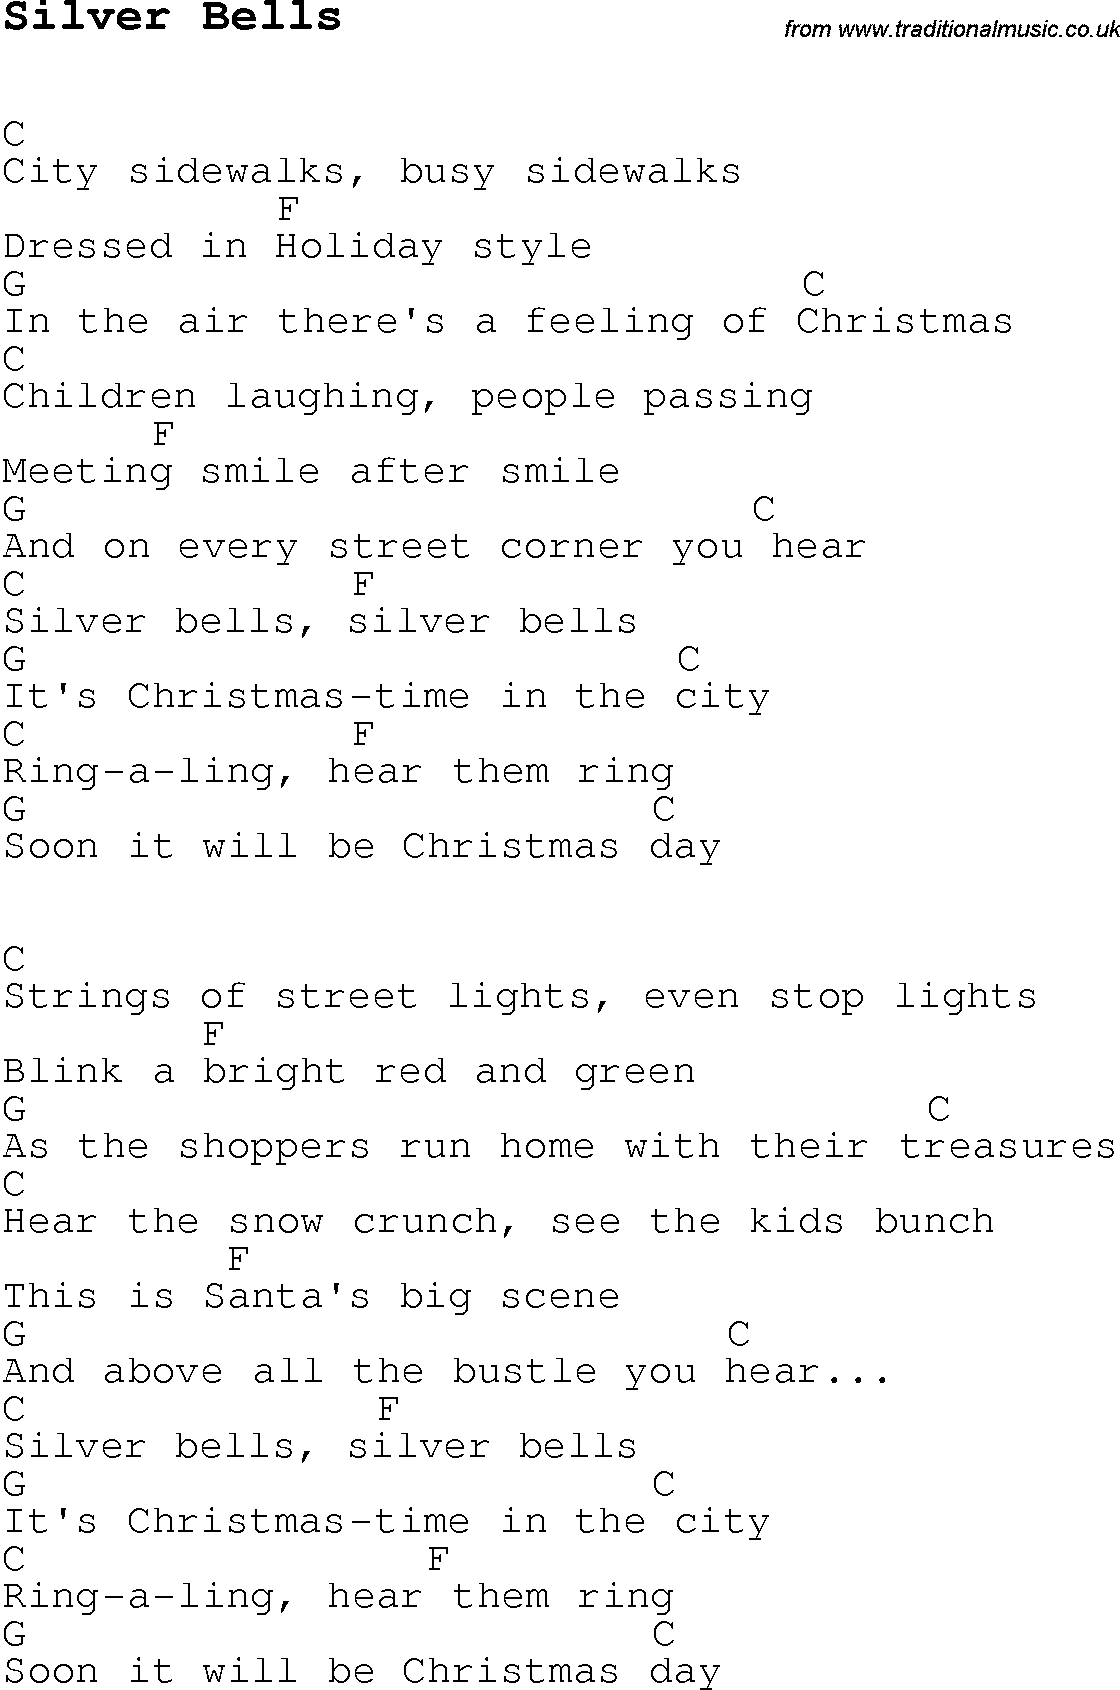 Christmas Carol/Song lyrics with chords for Silver Bells